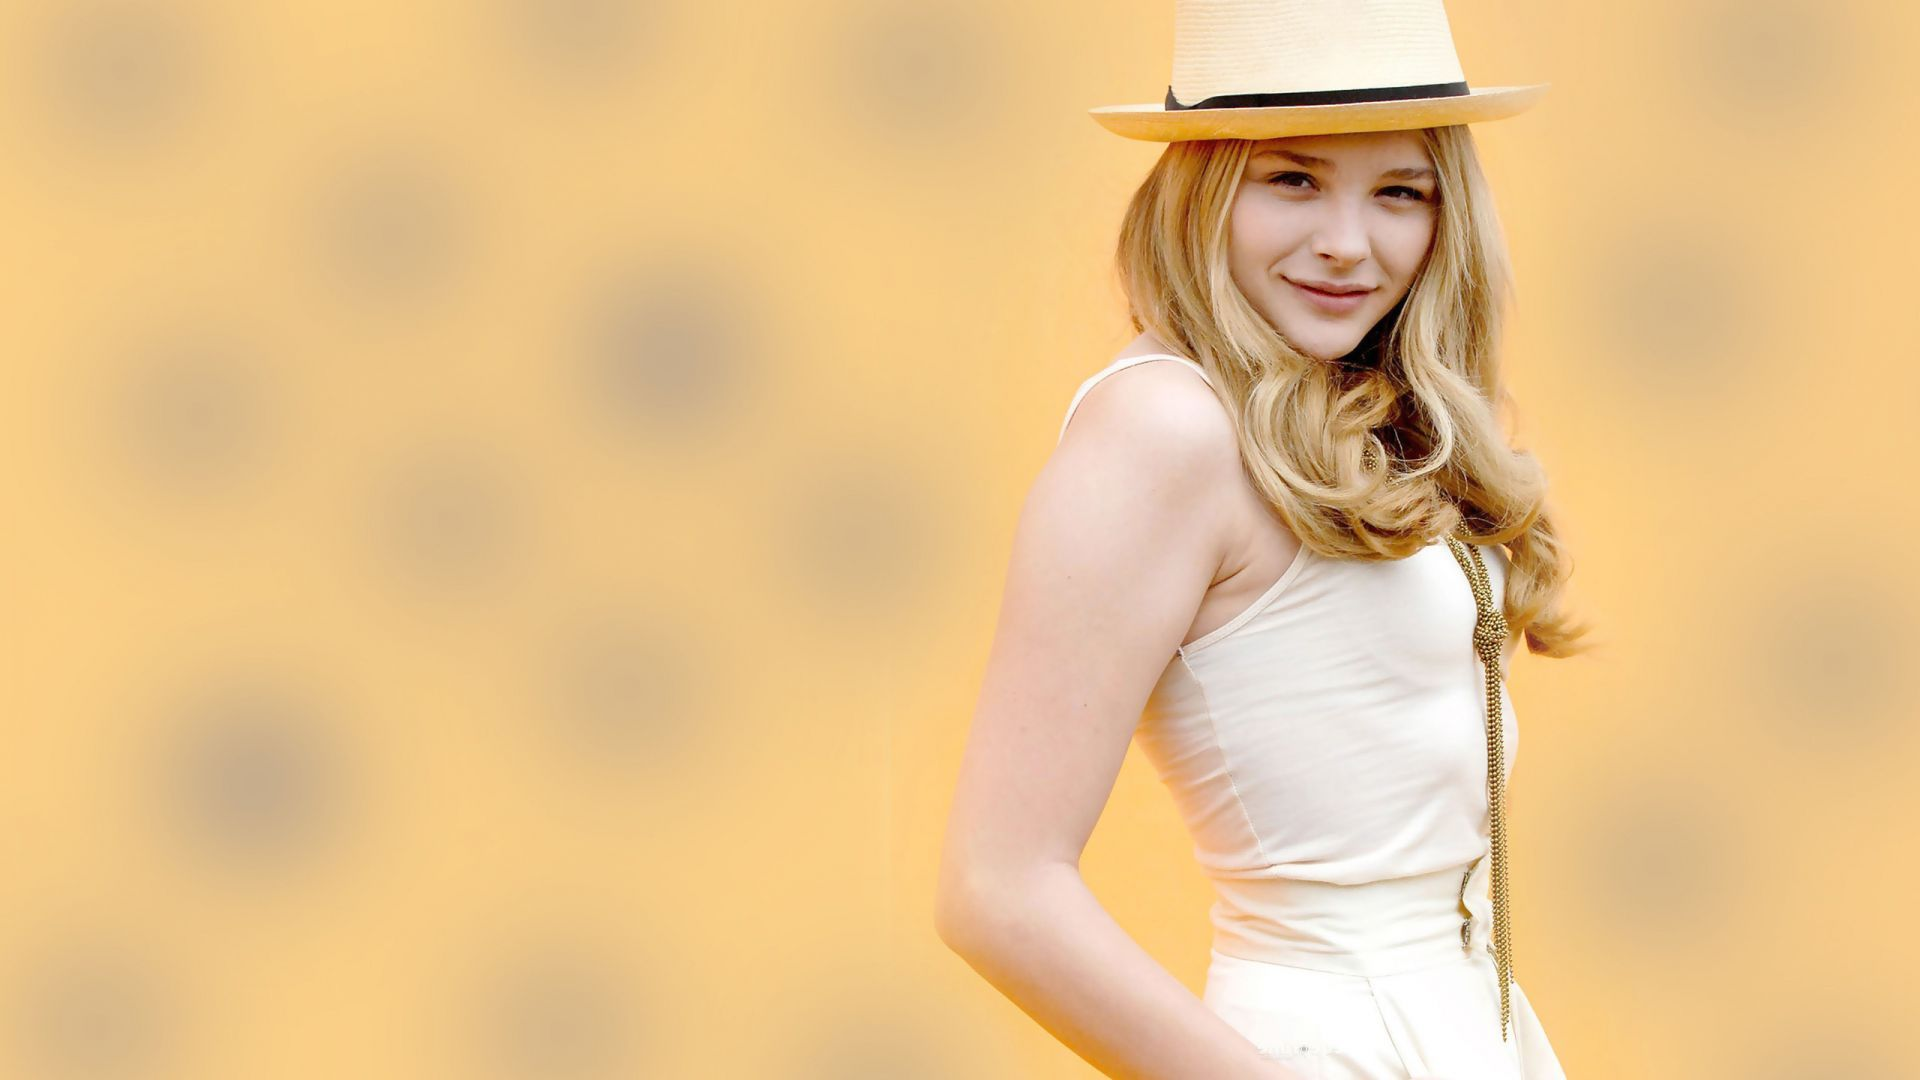 Chloe Moretz  Celebrities HD k Wallpapers